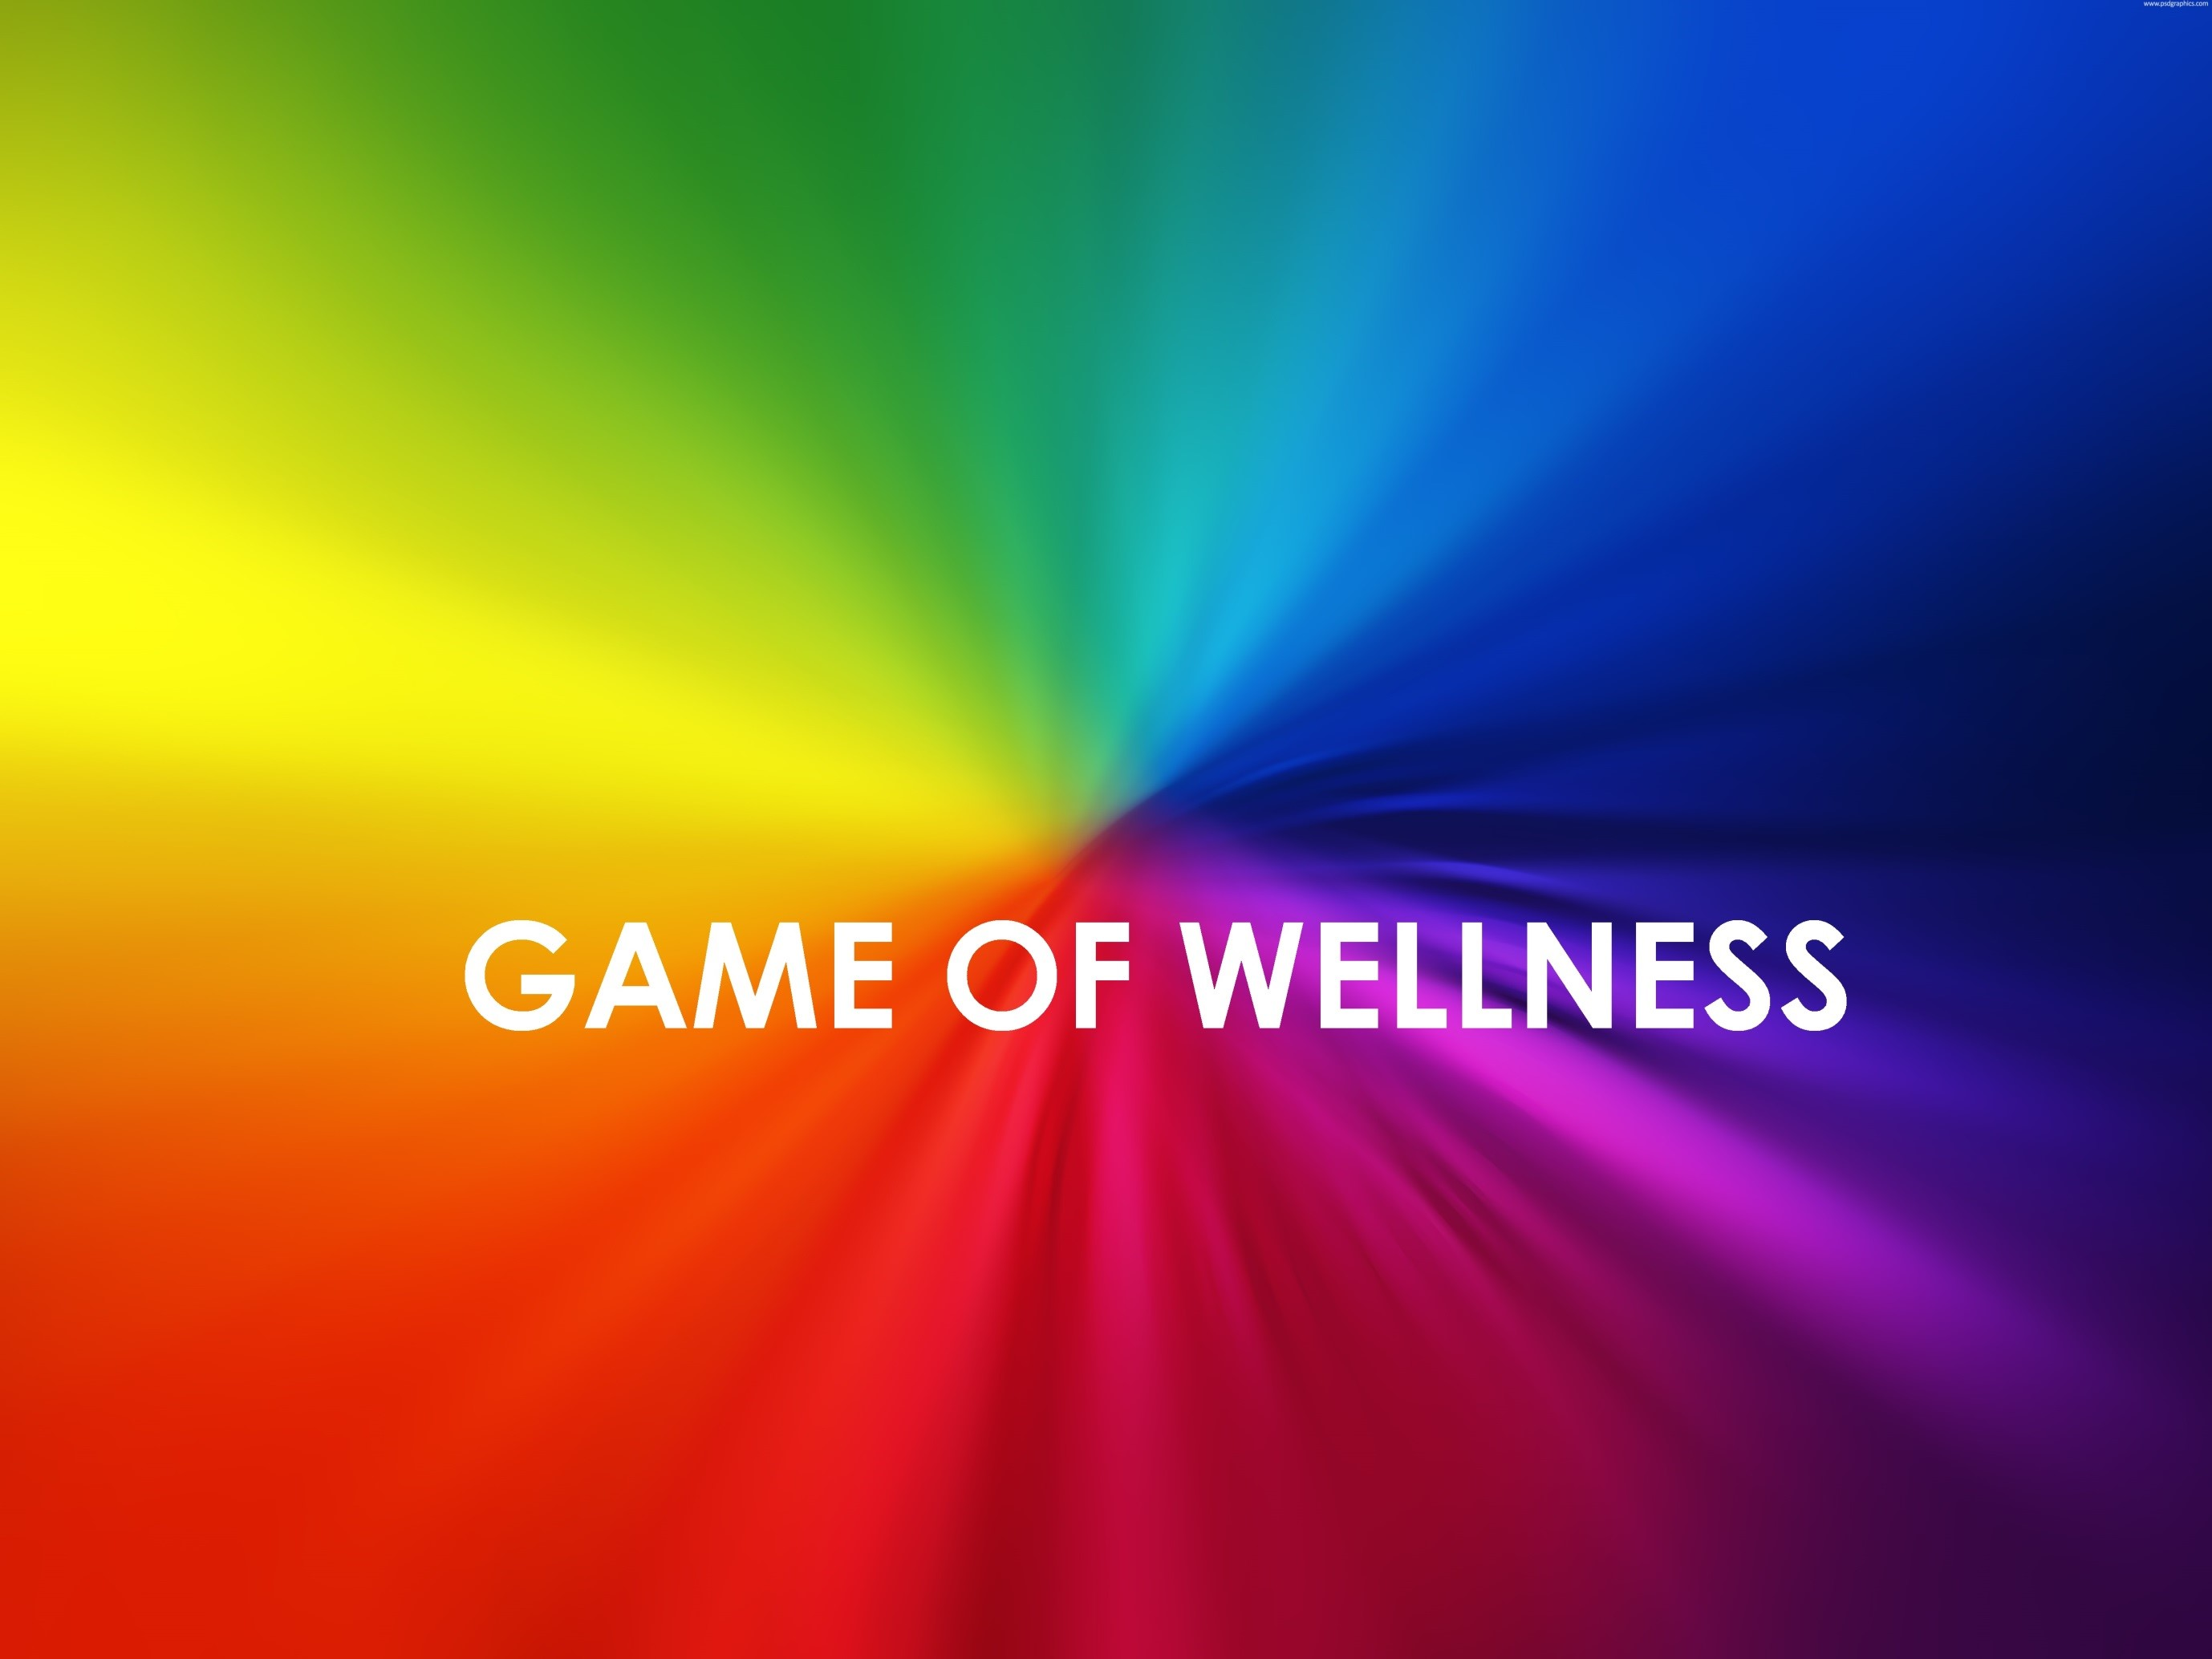 0ad953ec1af Do you want to experience more wellness in your work and your days  Play  more games and through your work change the world into a little better  place